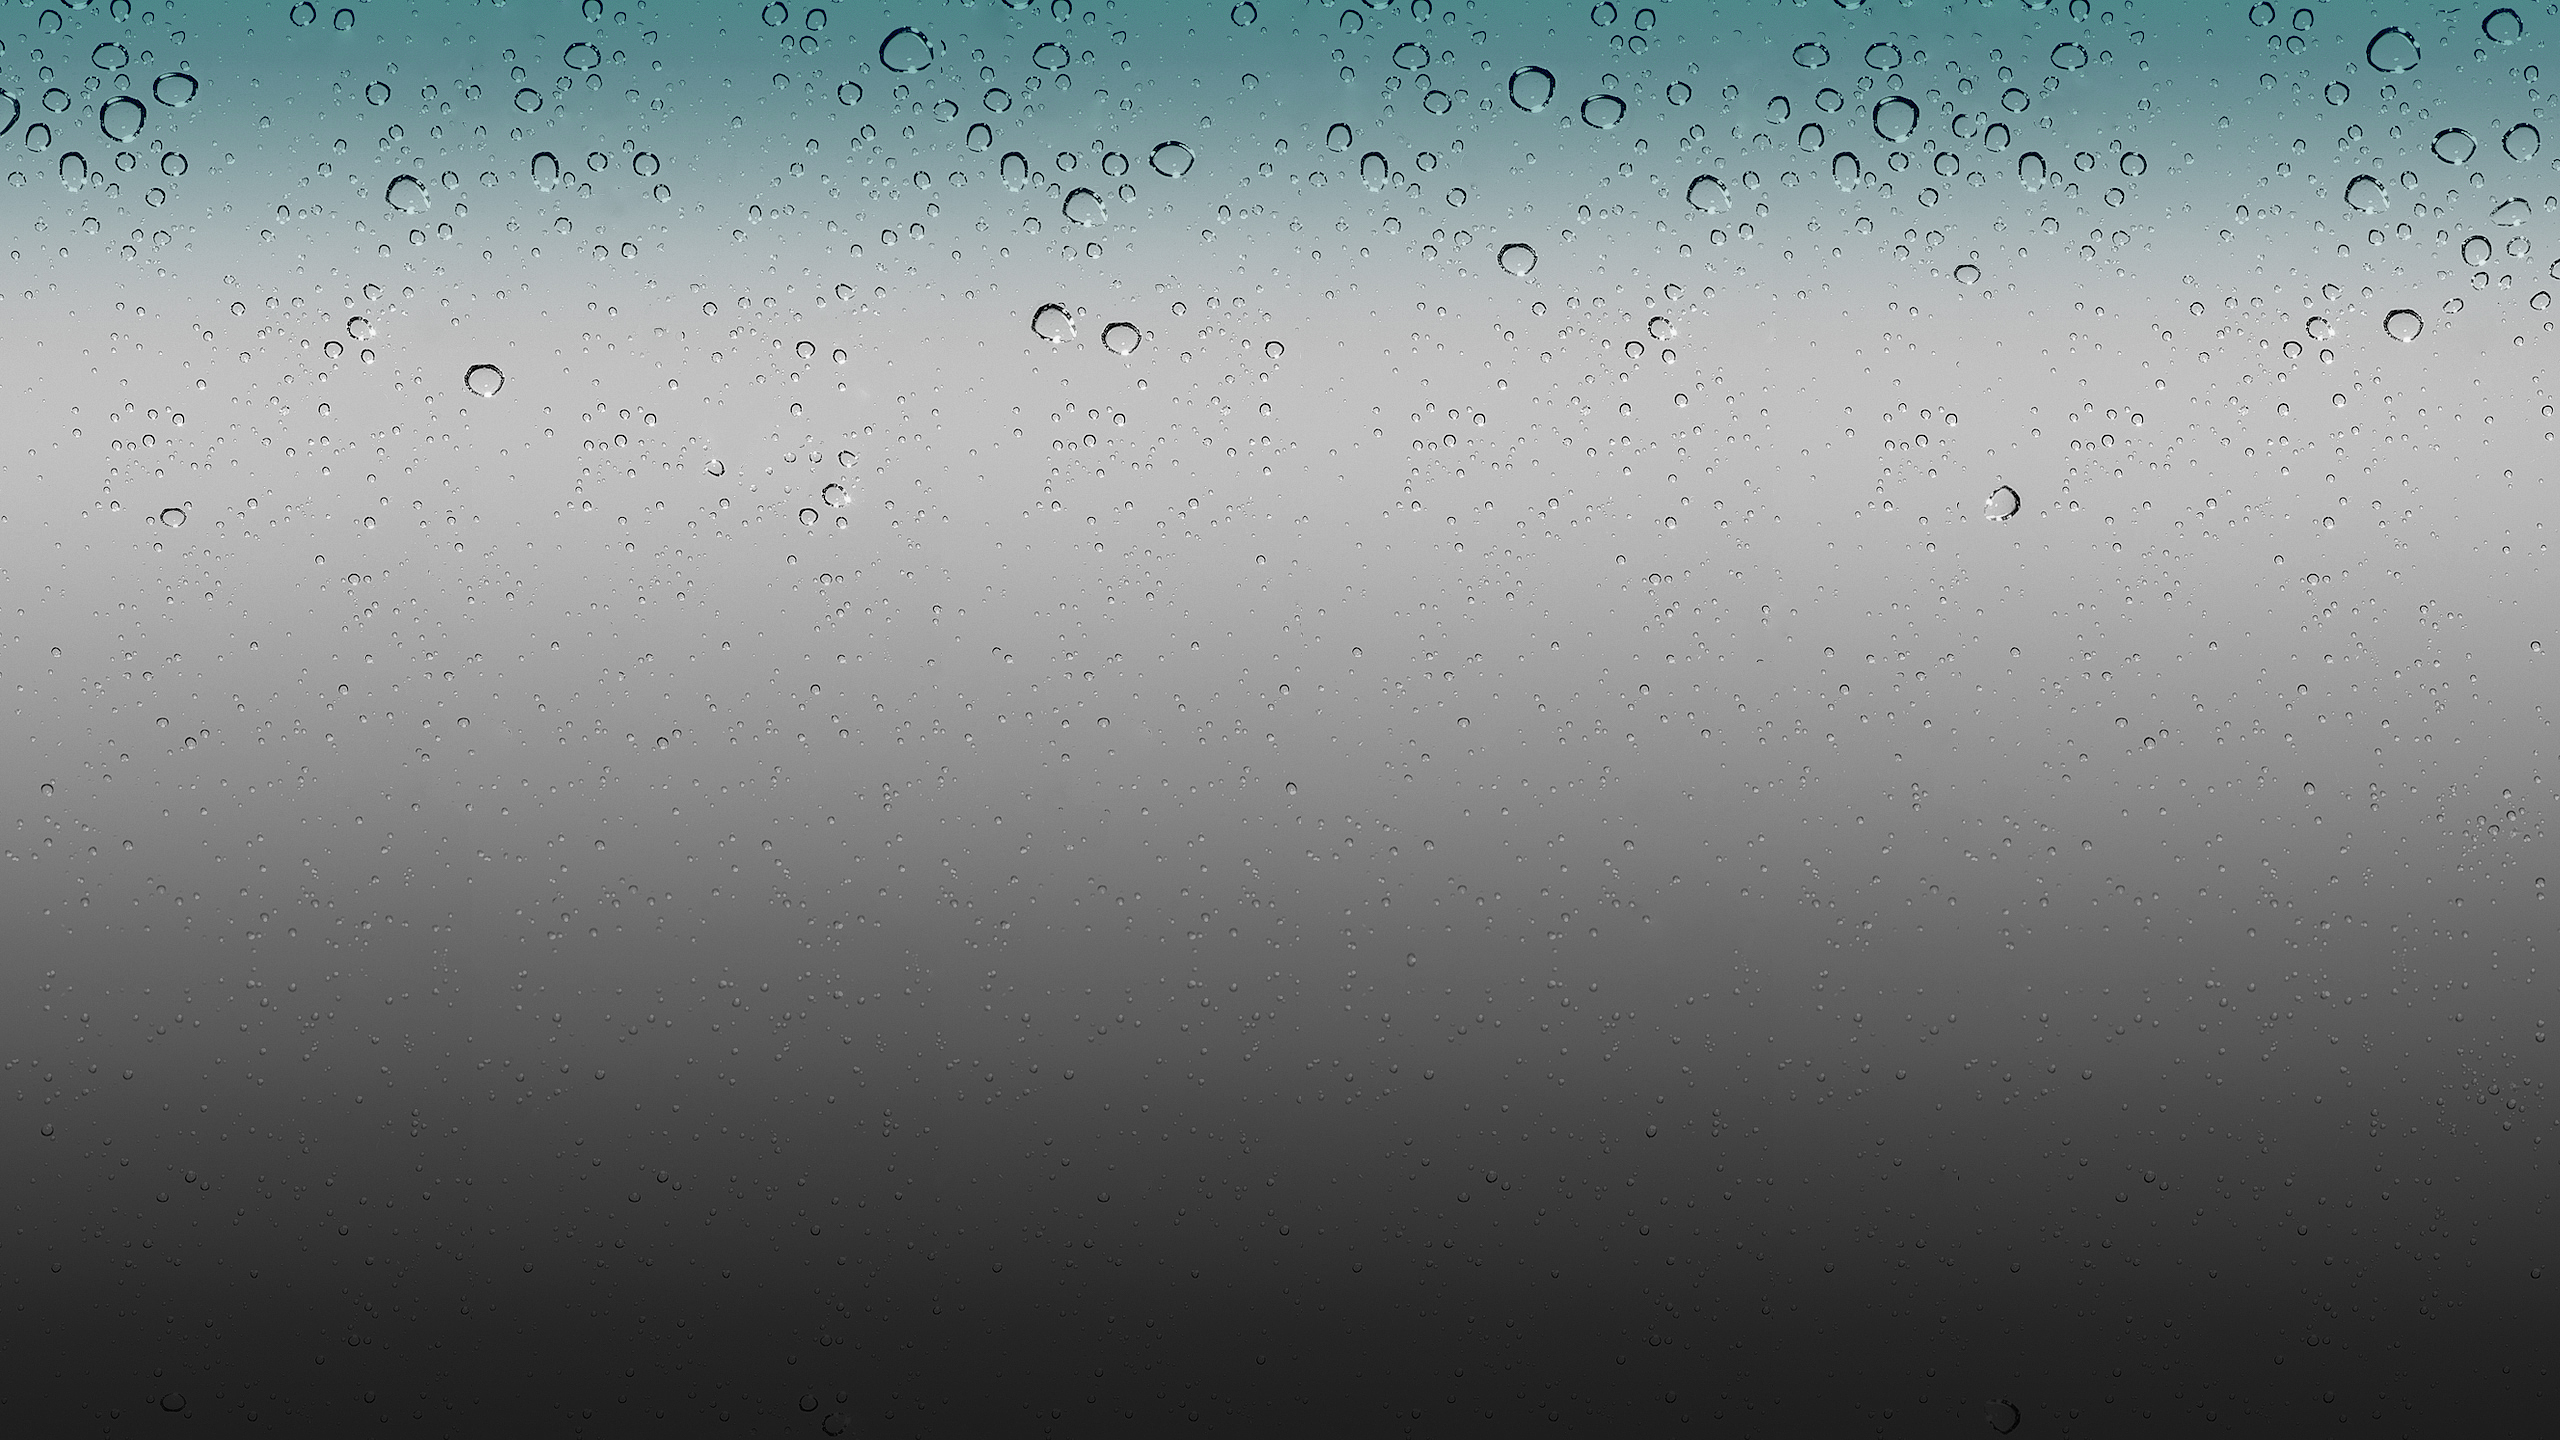 Free Download Ios Rain Drops Wallpaper Hd By Airplane By